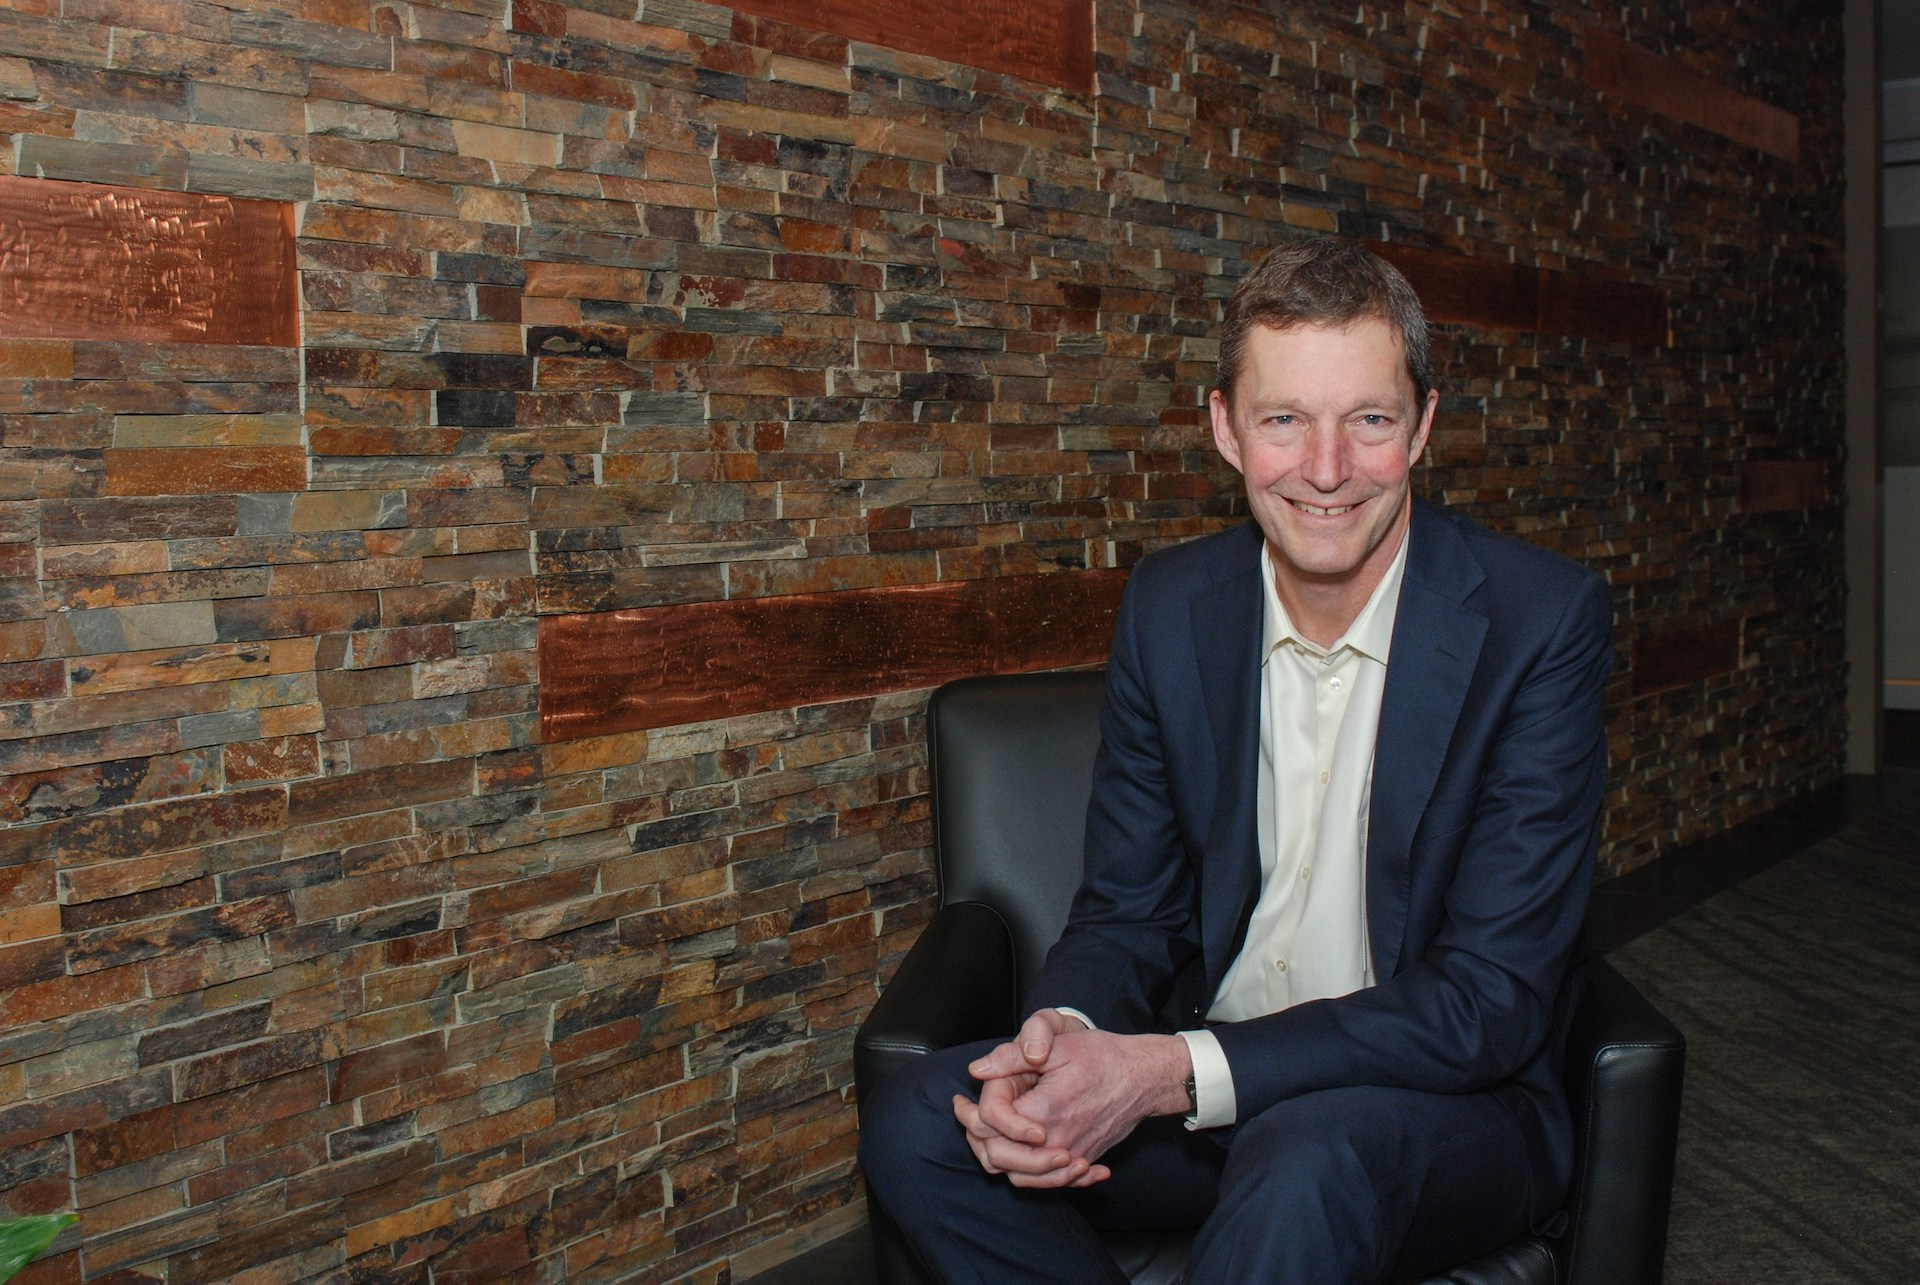 Photo: Peter Leighton, Co-Founder of RE Royalties | Credit: Courtesy Photo